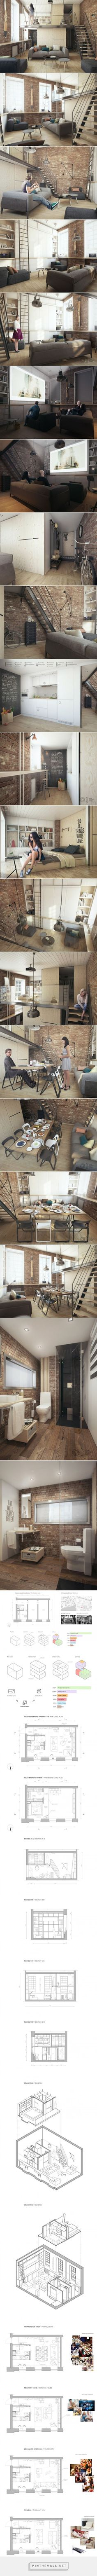 A Super Small Apartment That Adapts To Its Owners Needs... - a grouped images picture - Pin Them All